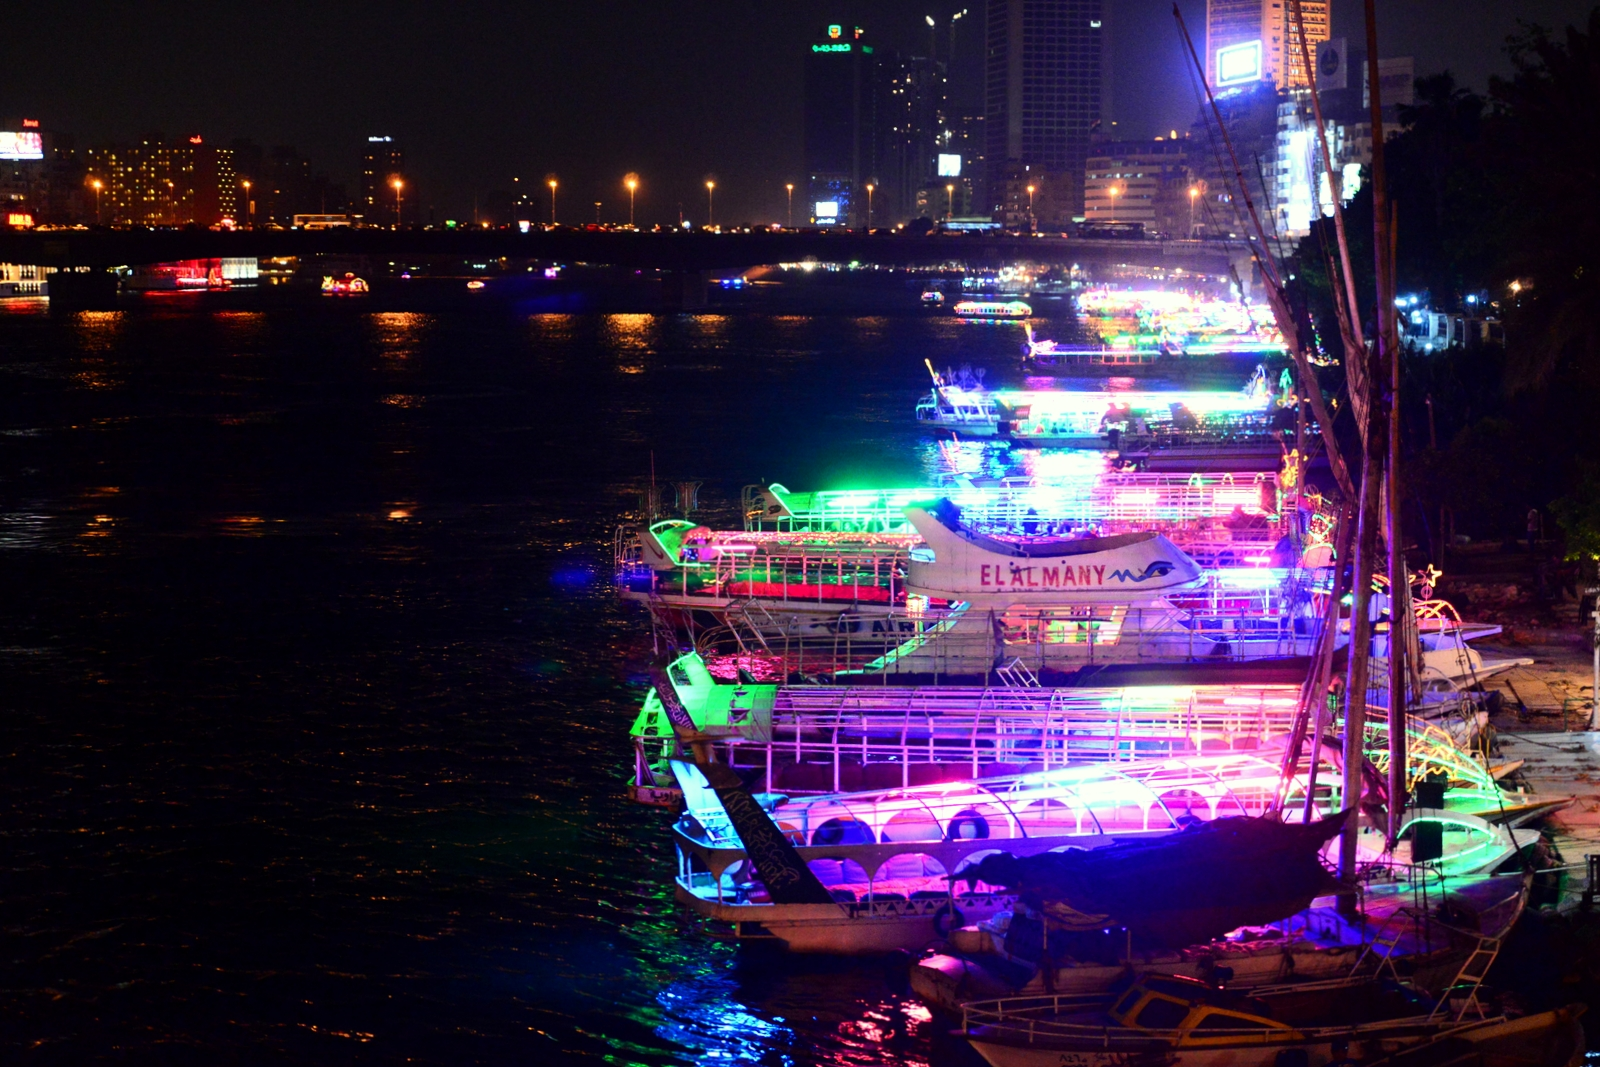 Fluorescent colours are used to light up the small boats and entice customers to come on board. (Photo by Aaron T. Rose)